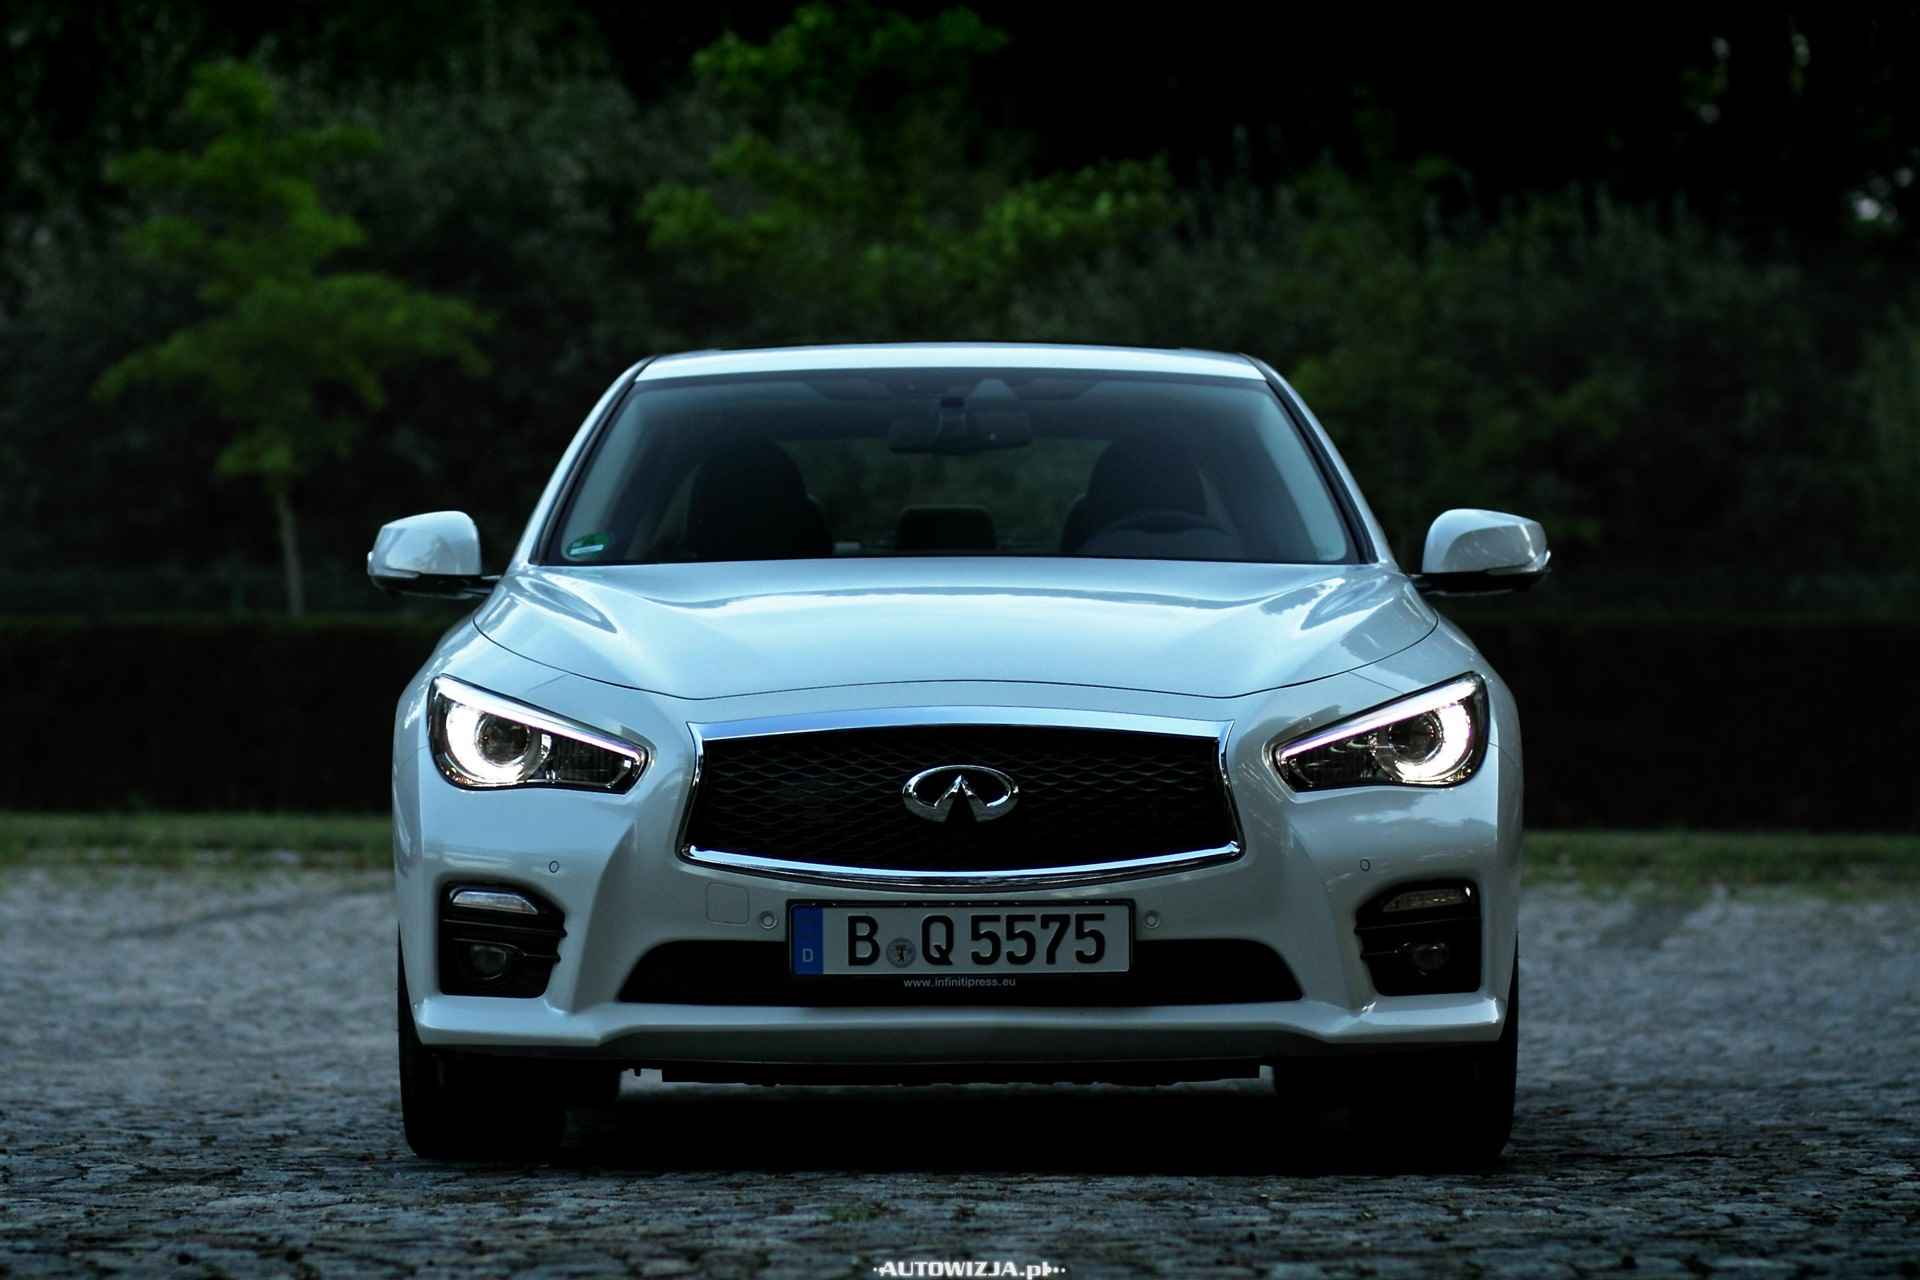 infiniti q50 sport 170 km at auto test motoryzacja. Black Bedroom Furniture Sets. Home Design Ideas